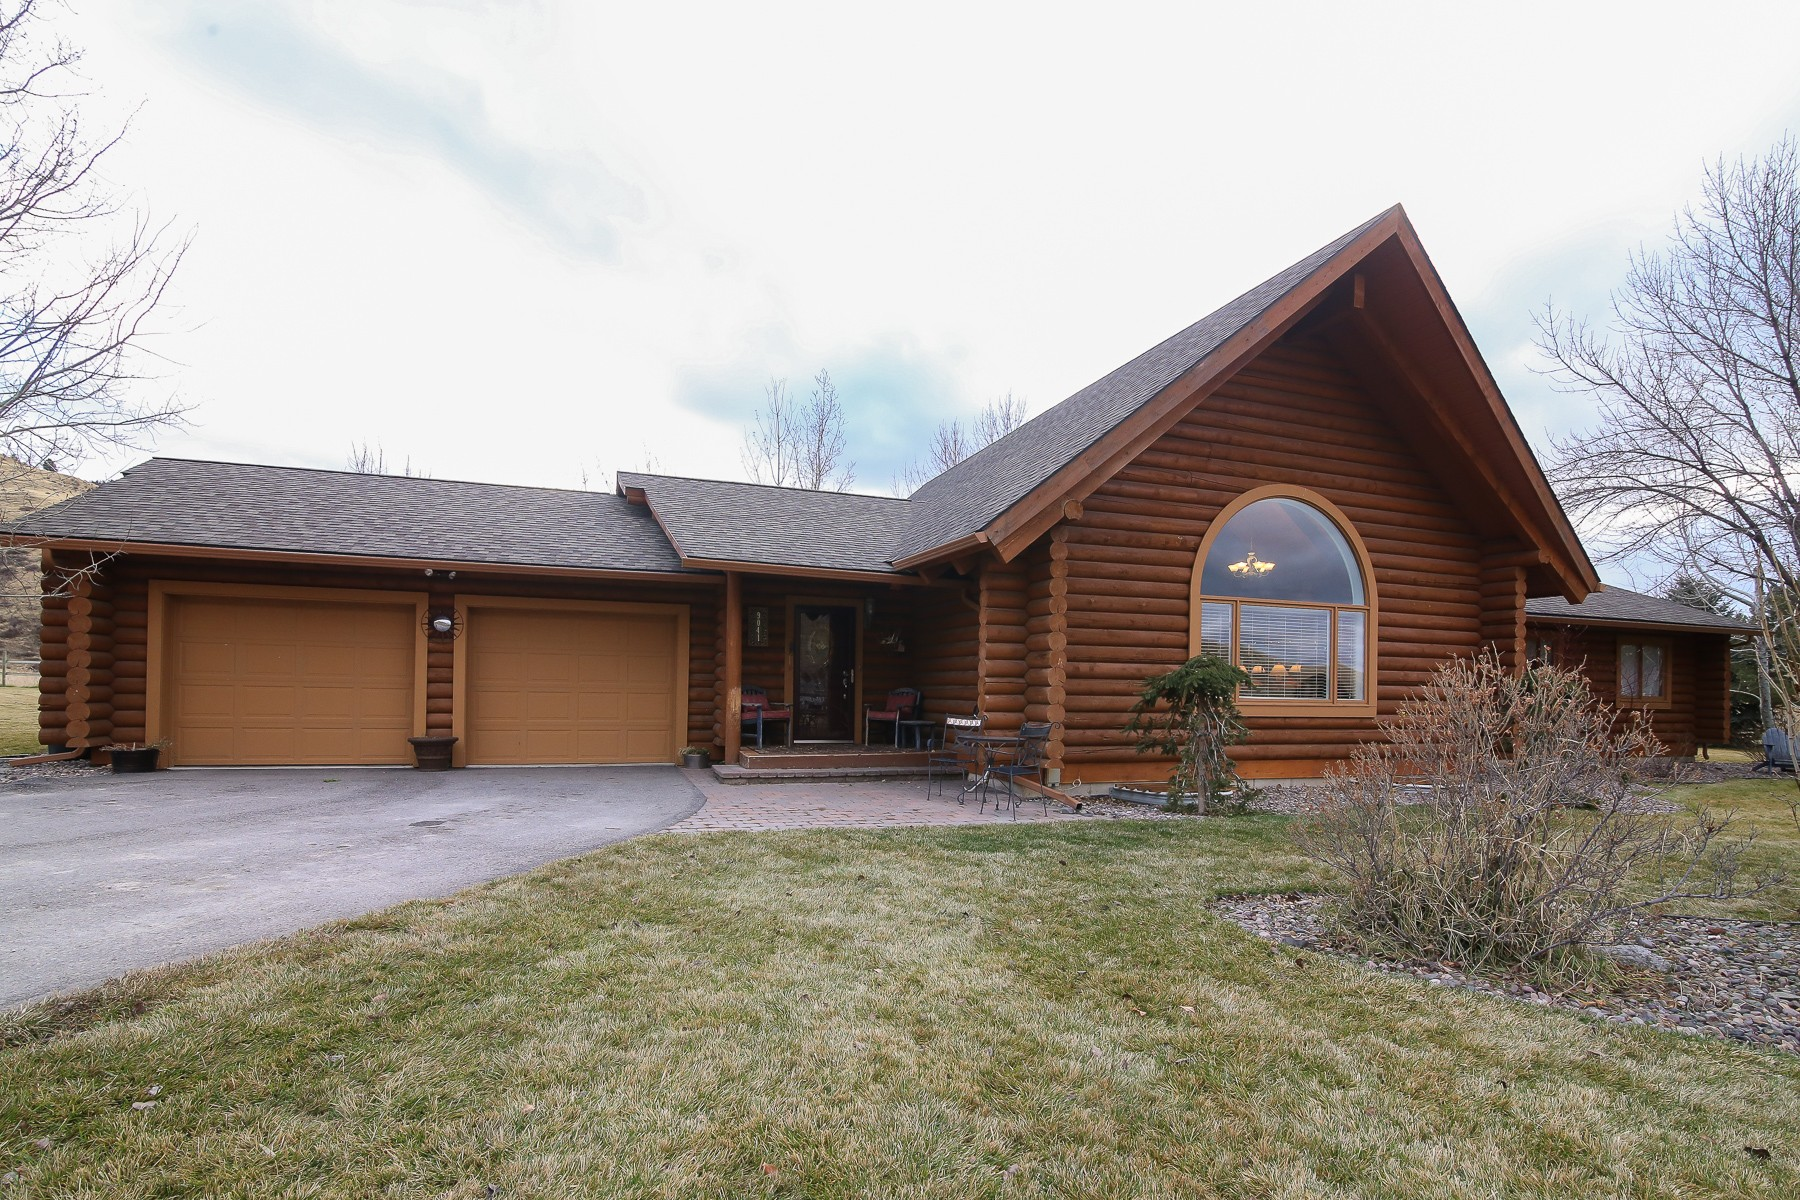 Single Family Home for Sale at 9041 Lehman Ln , Missoula, MT 59803 9041 Lehman Ln, Missoula, Montana, 59803 United States